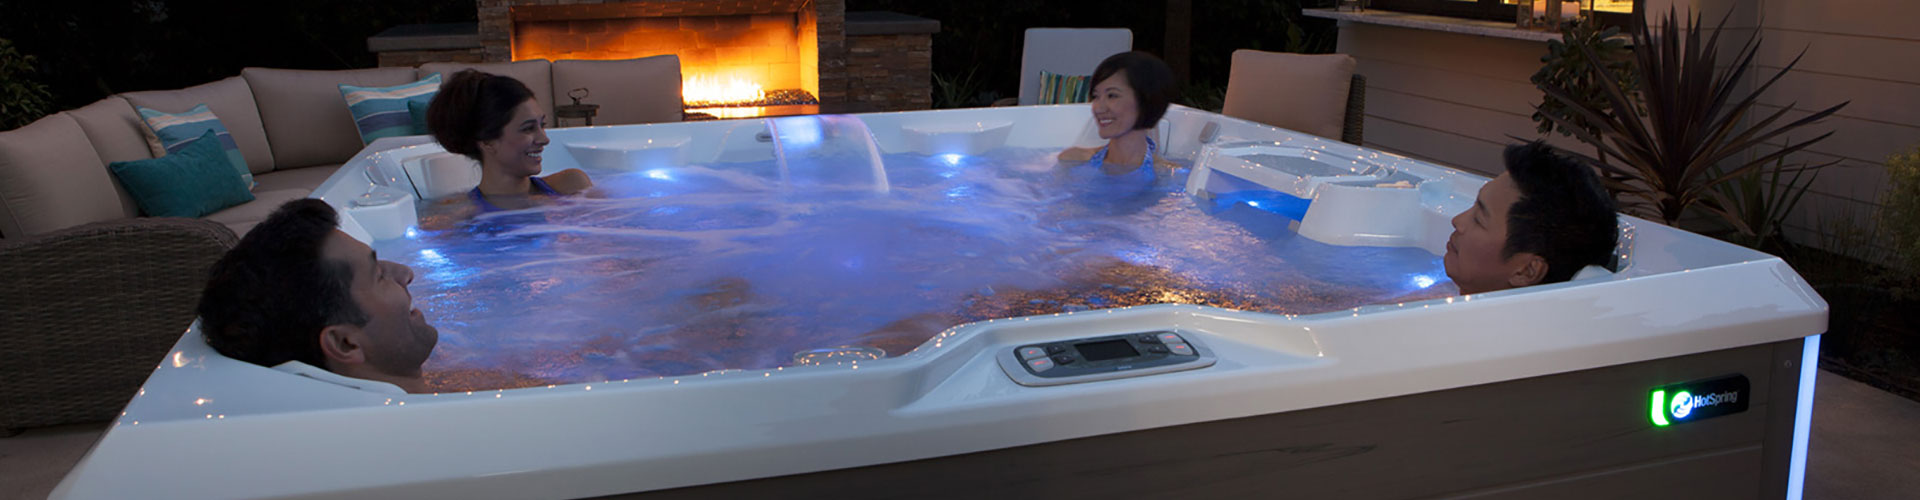 Our 3 Best Seller Hot Tubs and Why